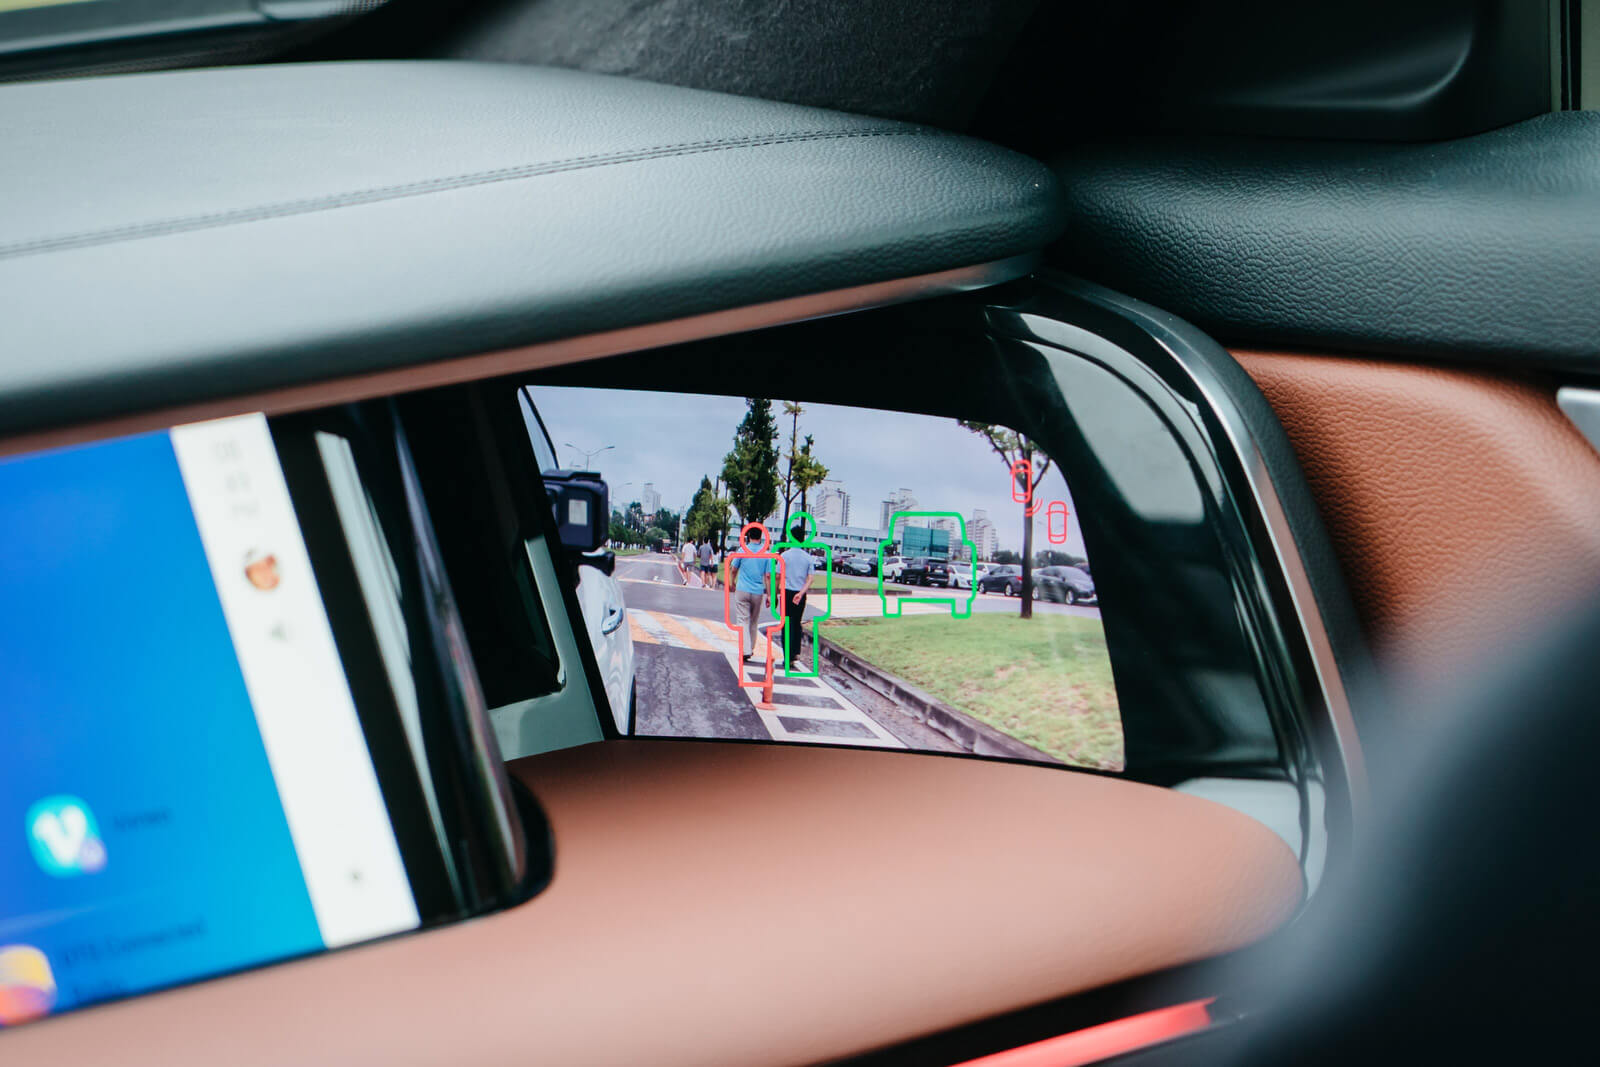 Samsung's Digital Cockpit 2.0 is equipped with E-Mirror, which recognizes nearby pedestrians and vehicles.